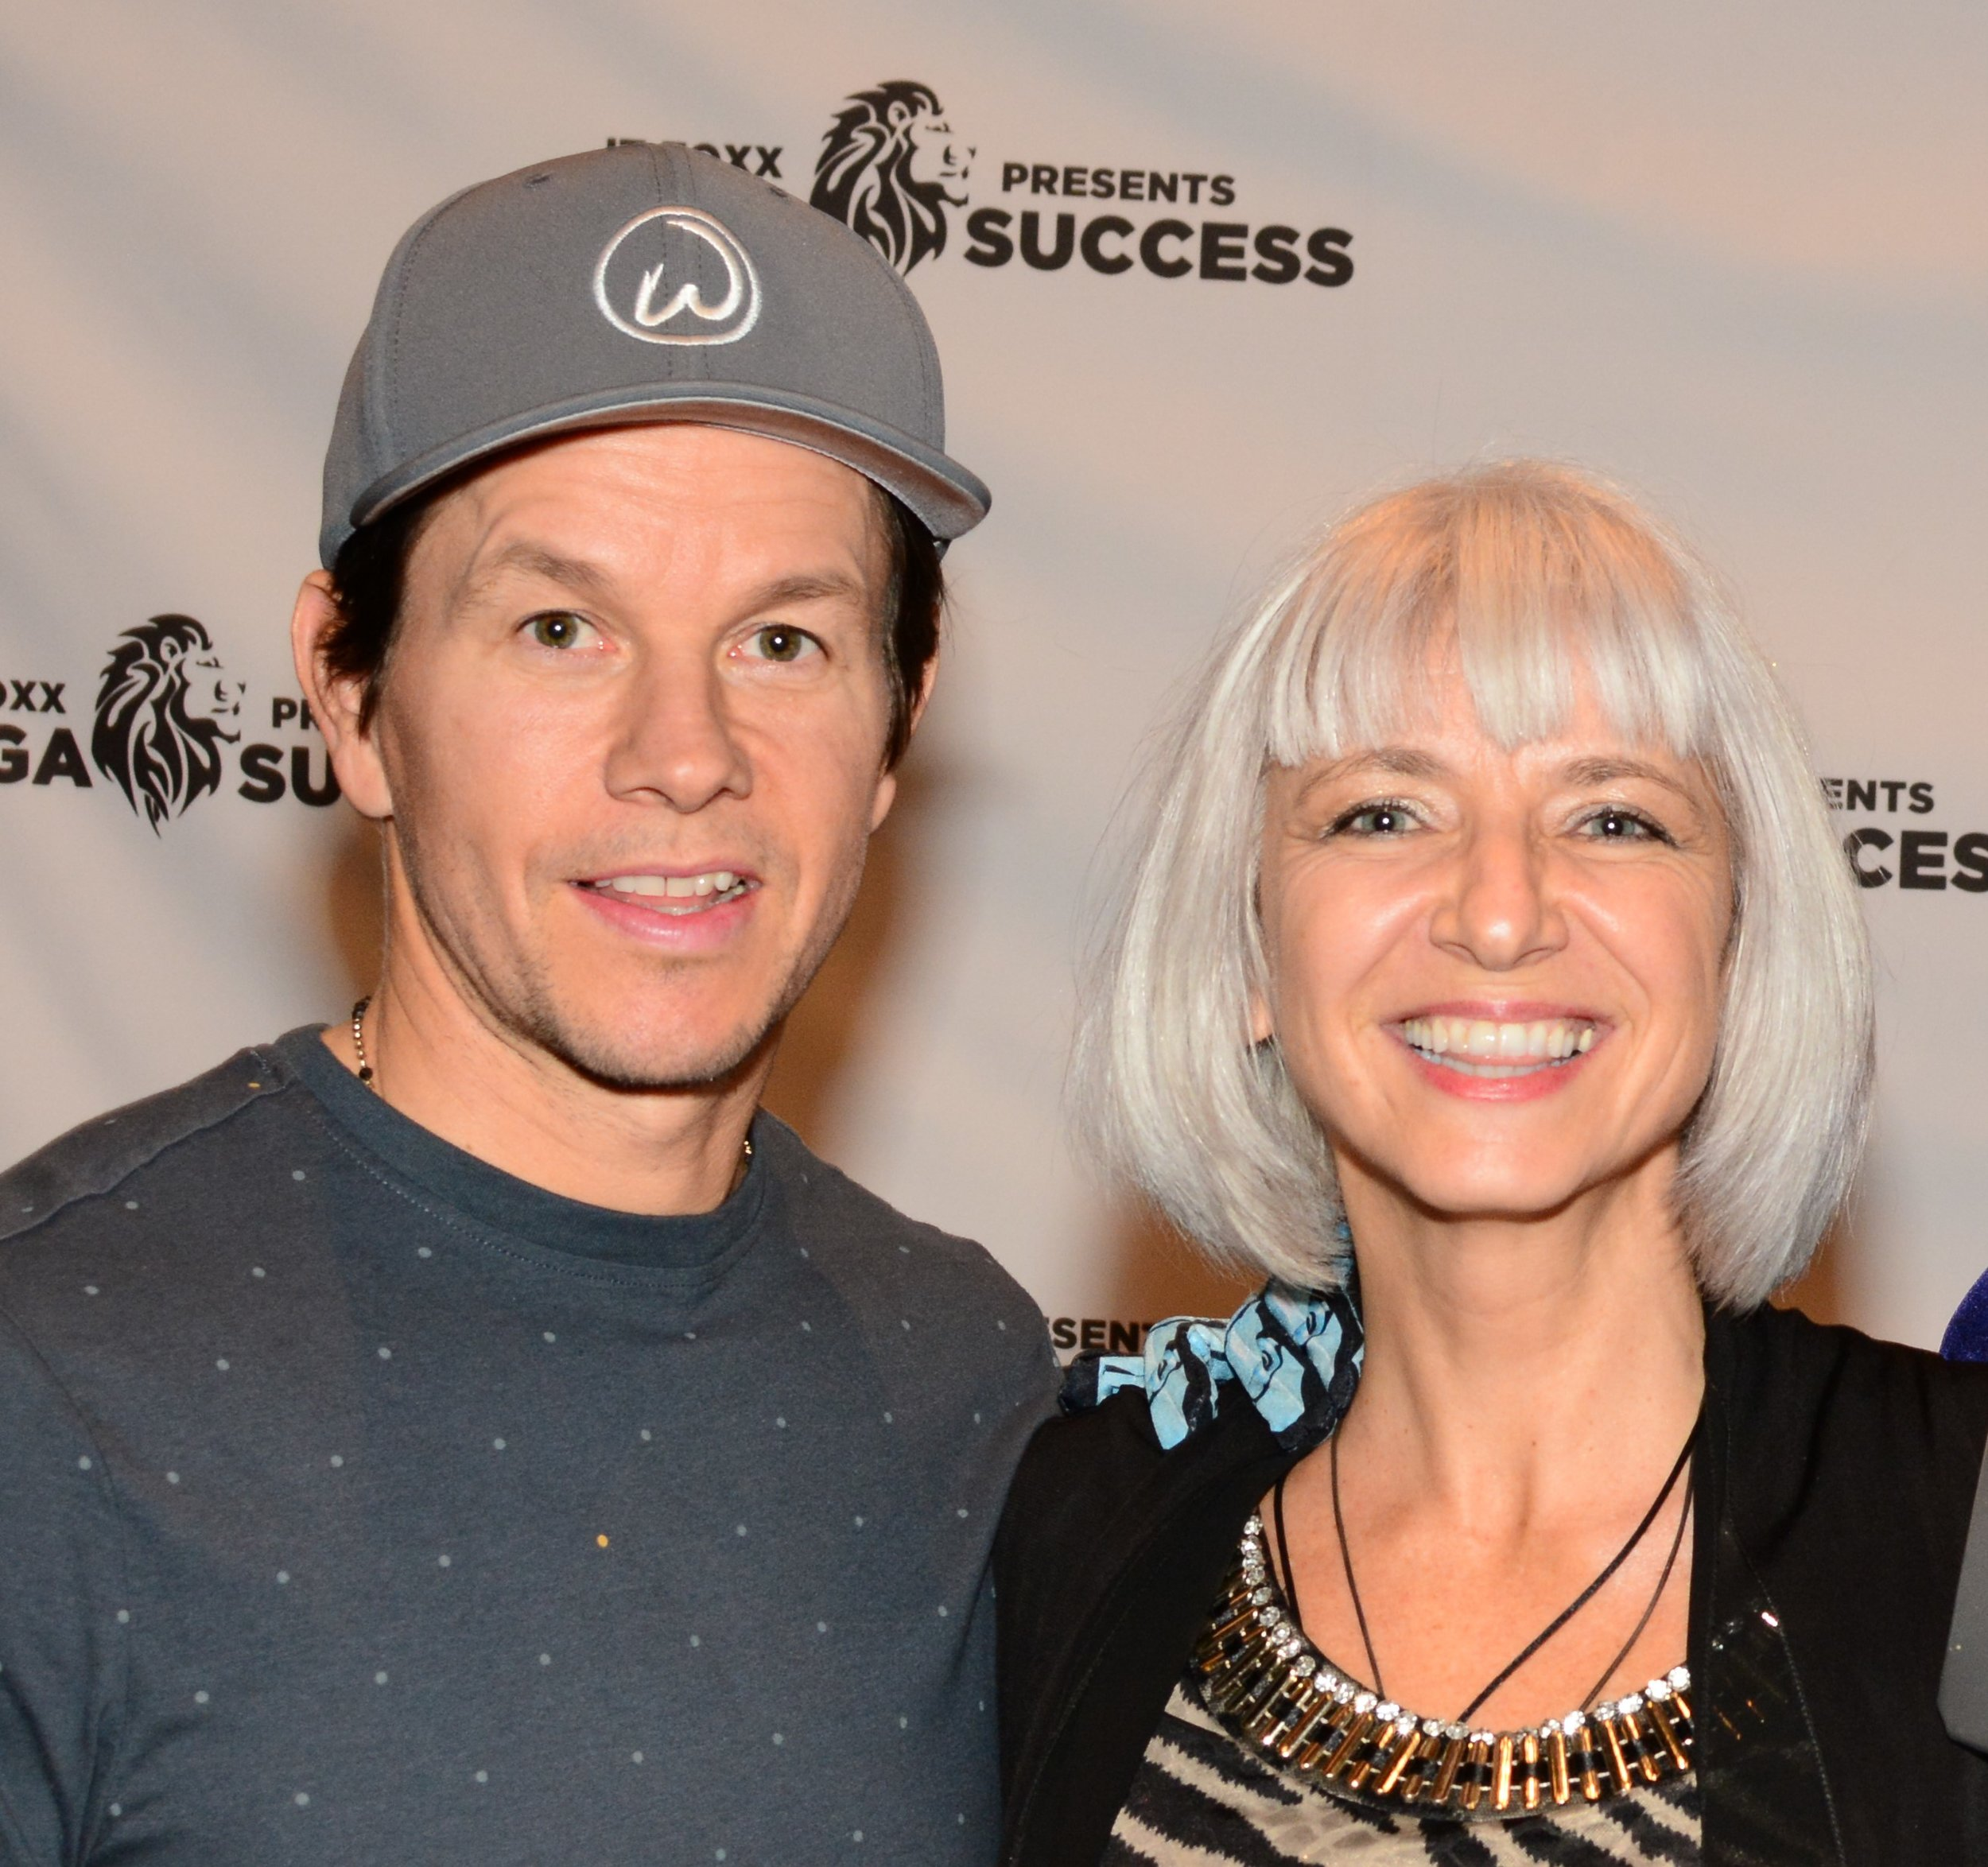 Stéphanie Rottet and Mark Wahlberg